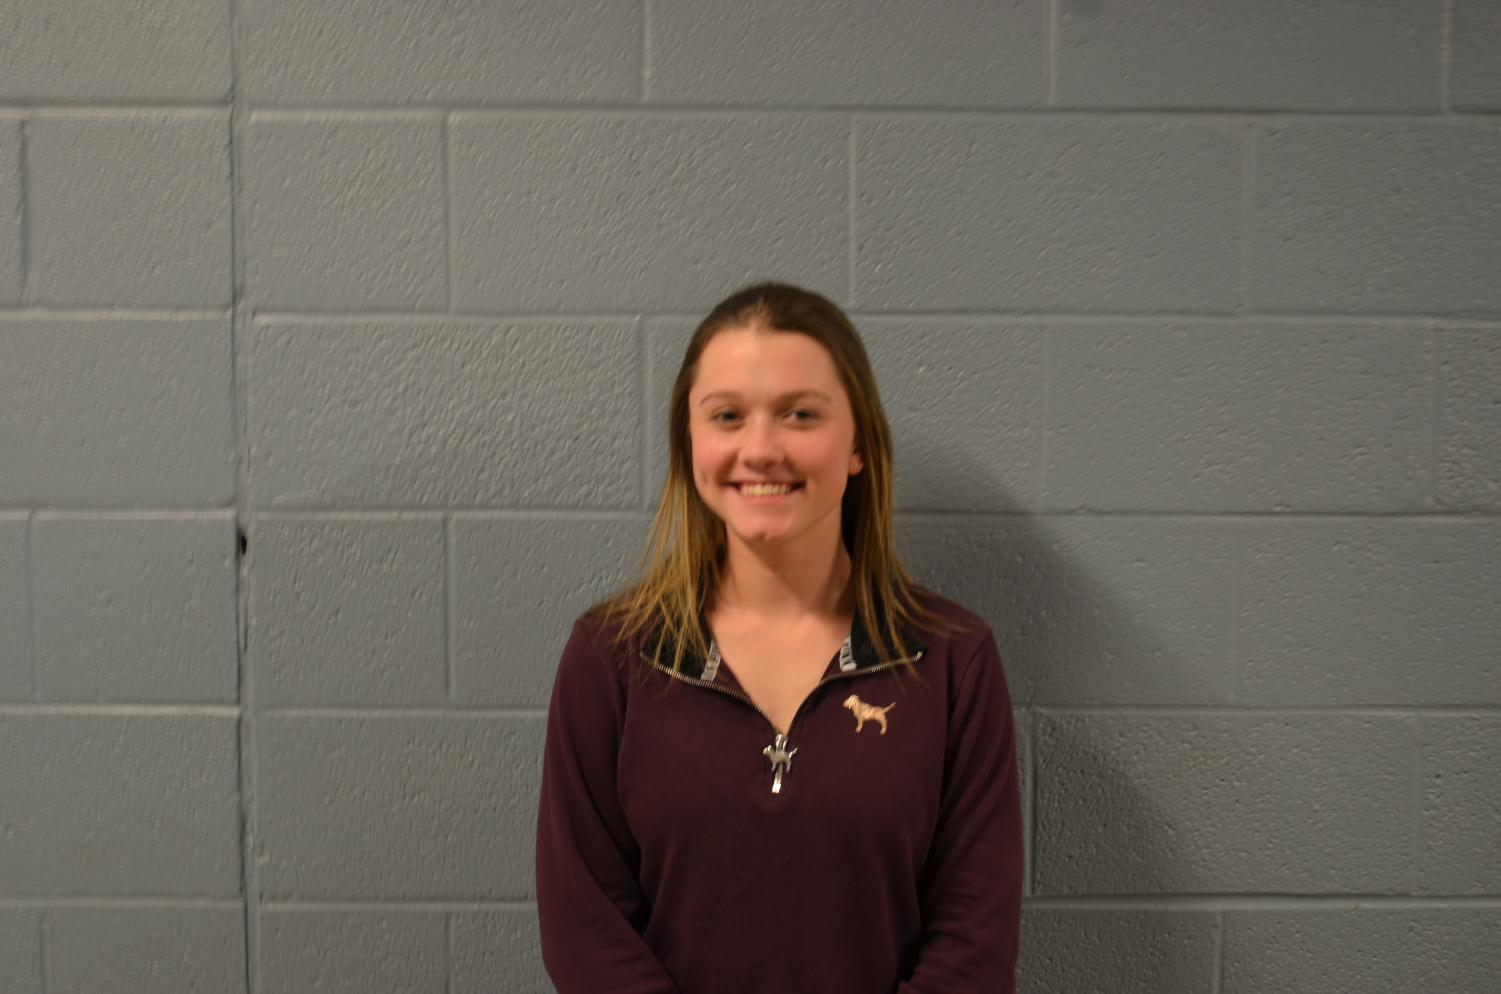 Congratulation to Brianna Foy for being Senior of the Week!